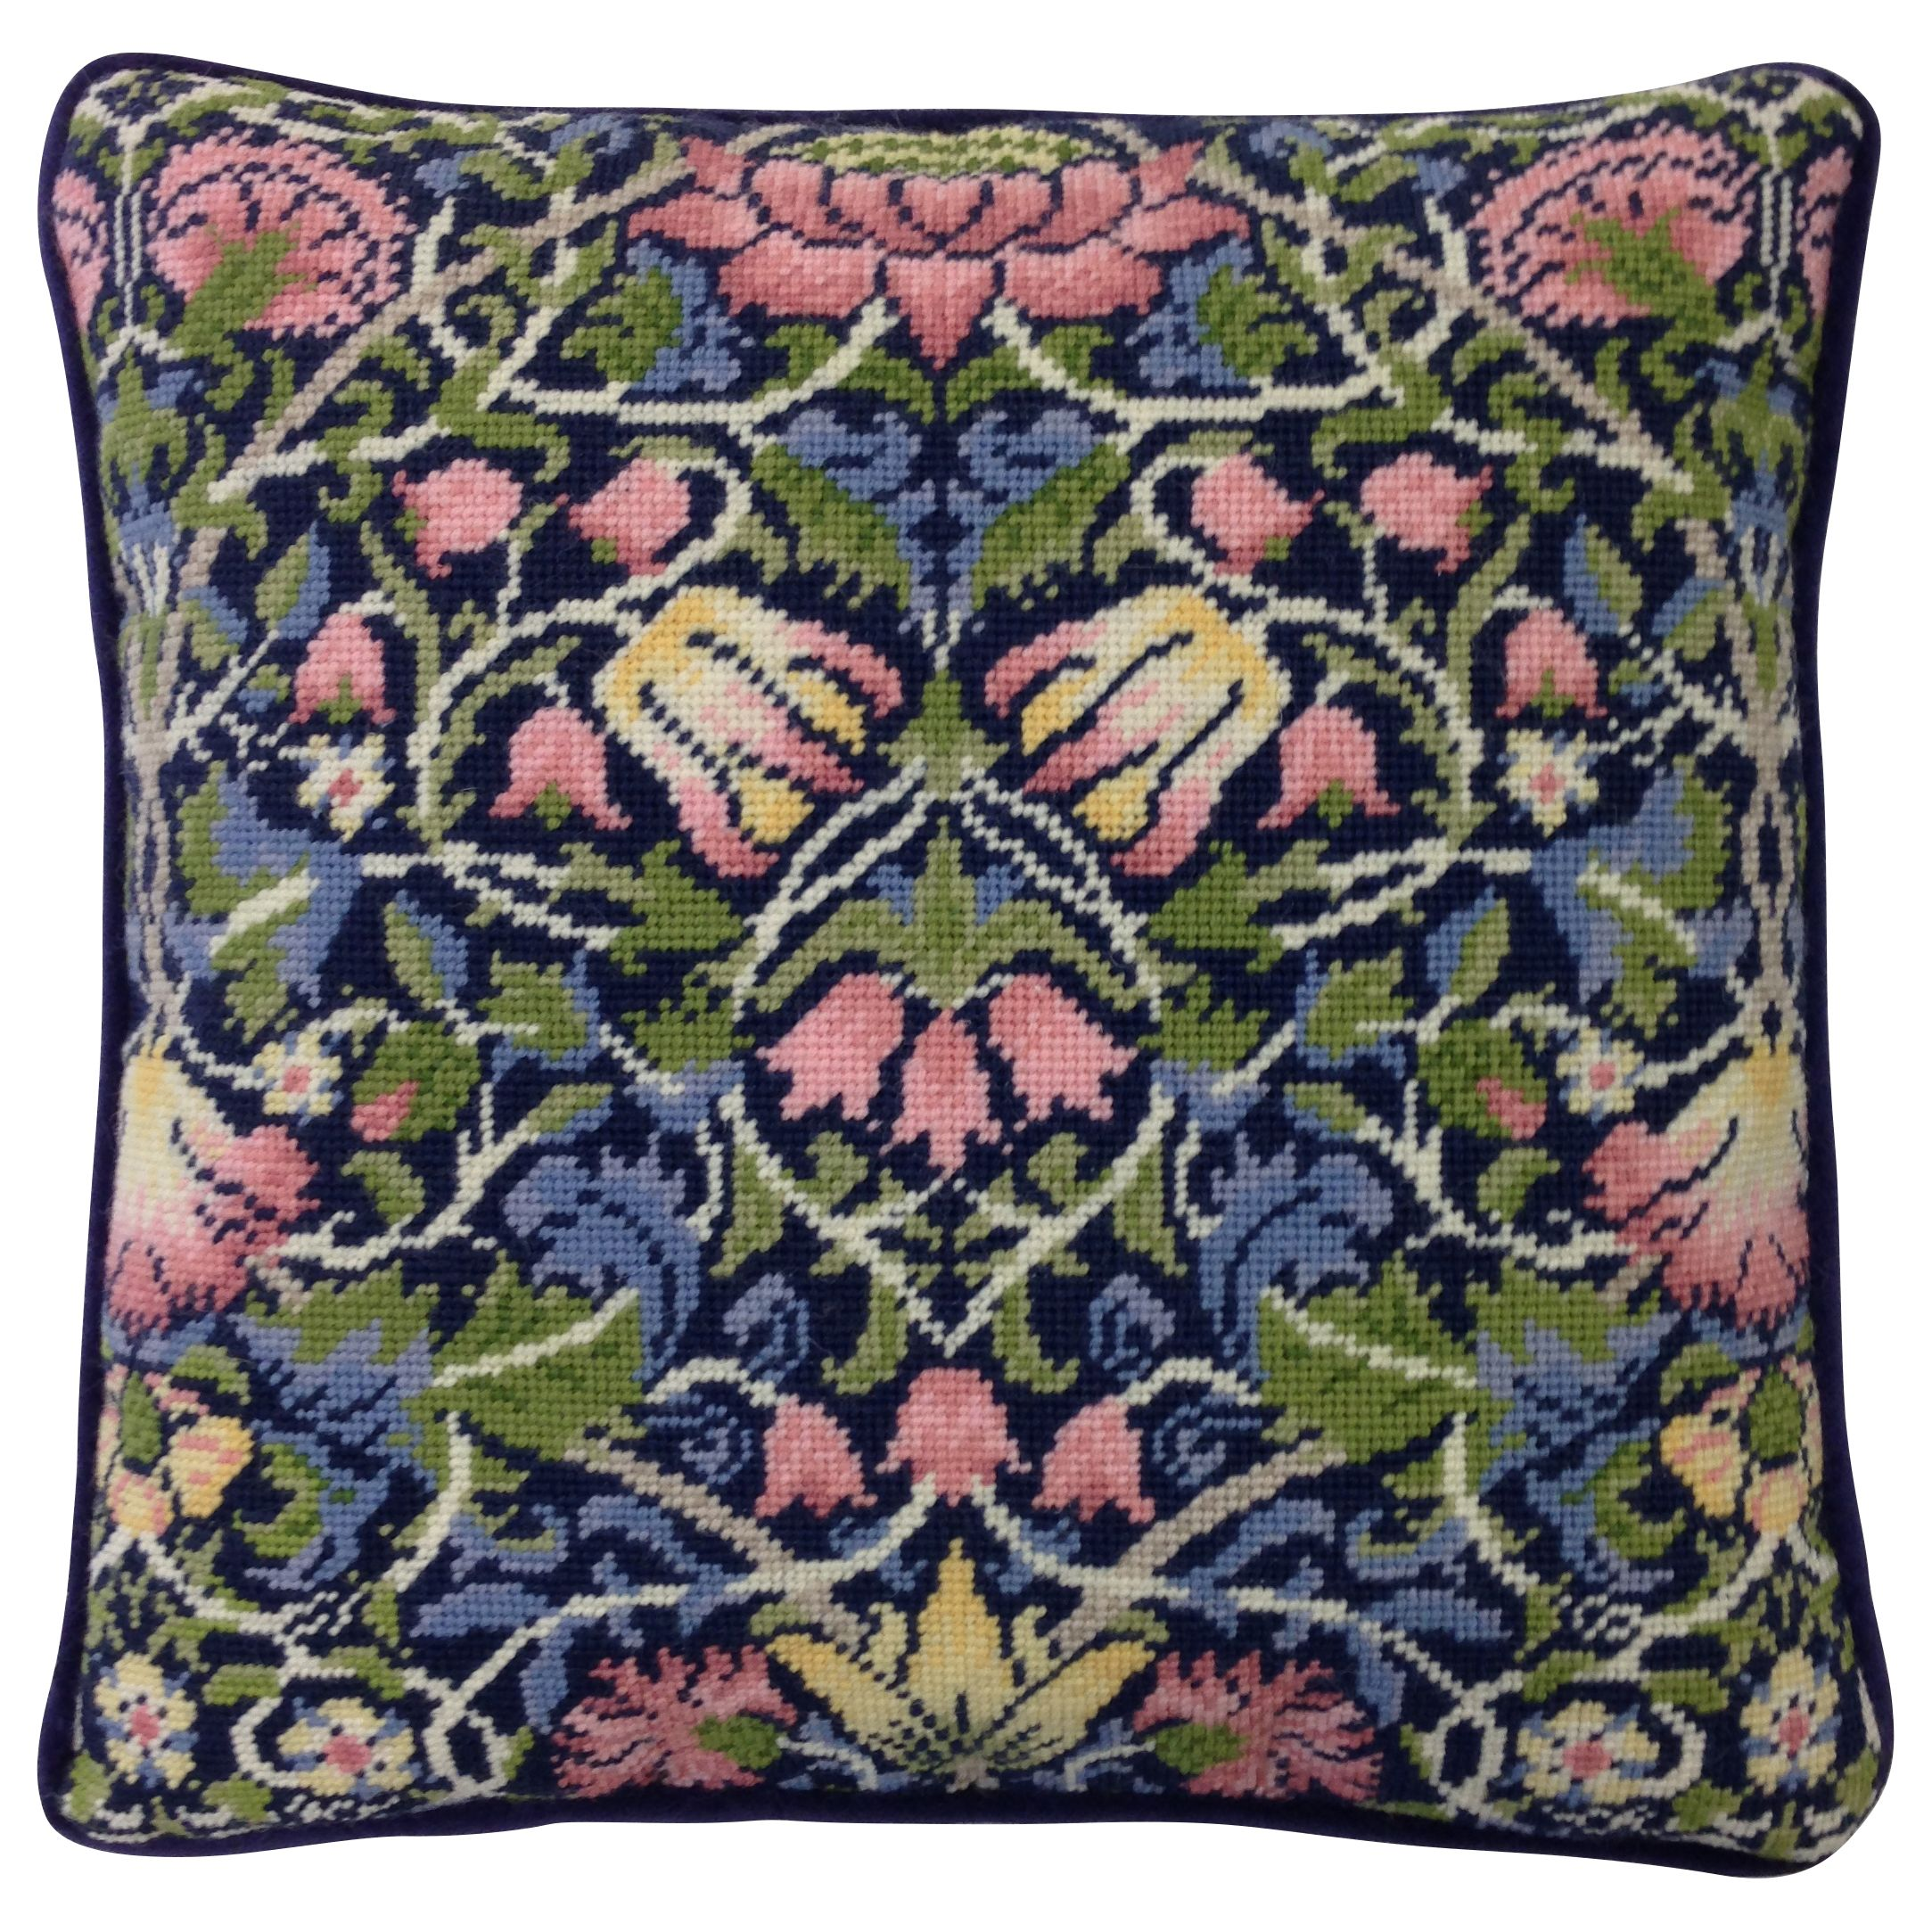 Bothy Threads Bothy Threads William Morris Bell Flower Printed Canvas Tapestry Kit